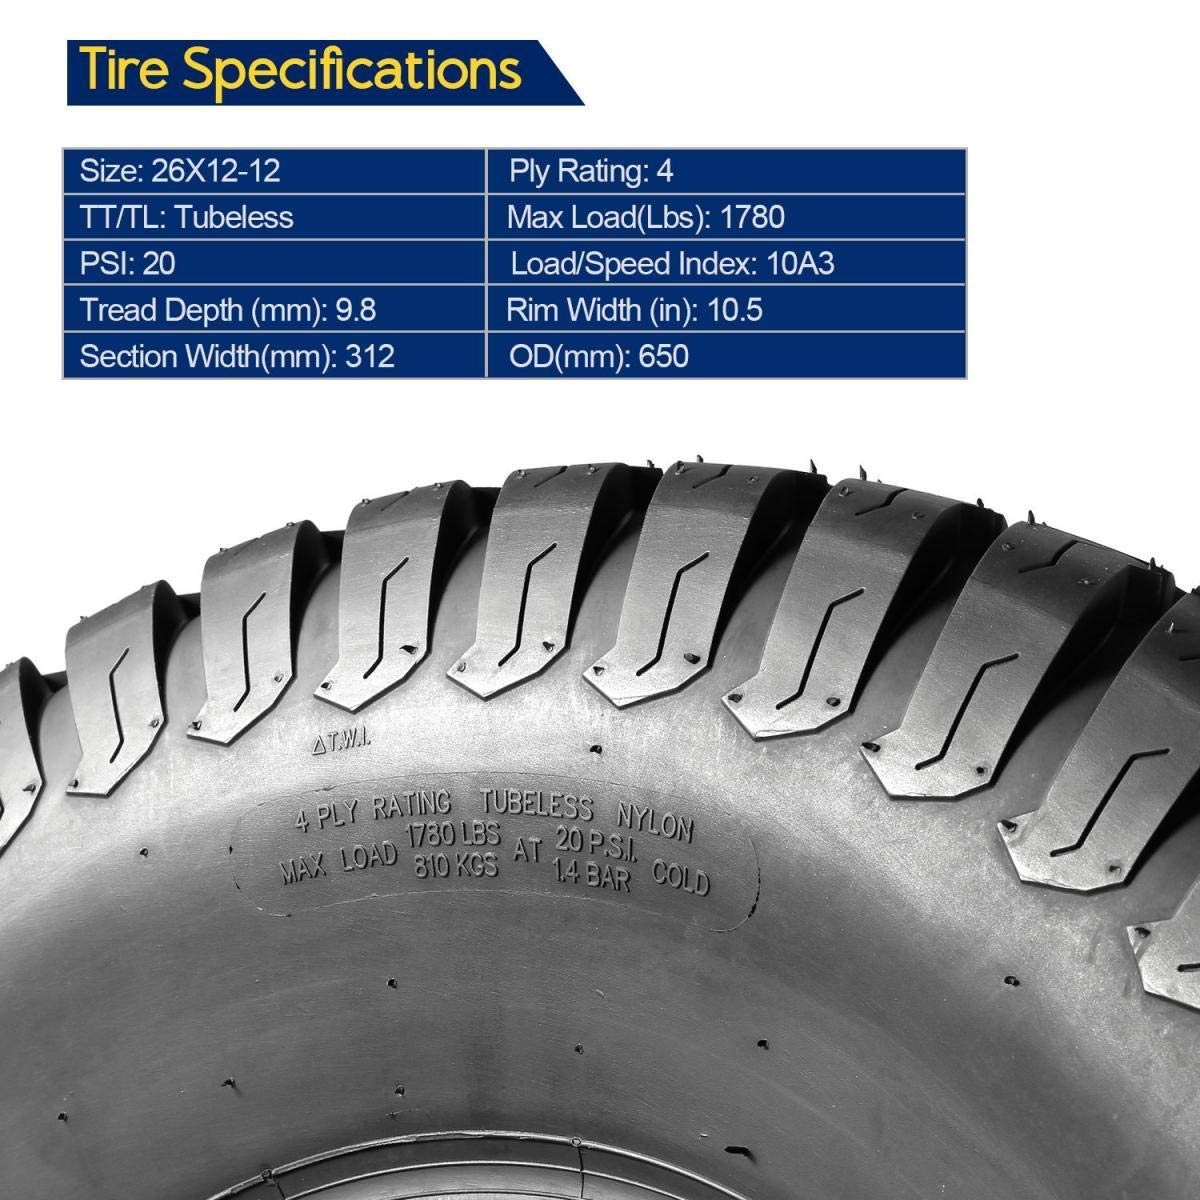 Set of 2 MaxAuto 26x12-12 26x12x12 Turf Tires for Lawn /& Garden Mower,4 Ply Tubeless